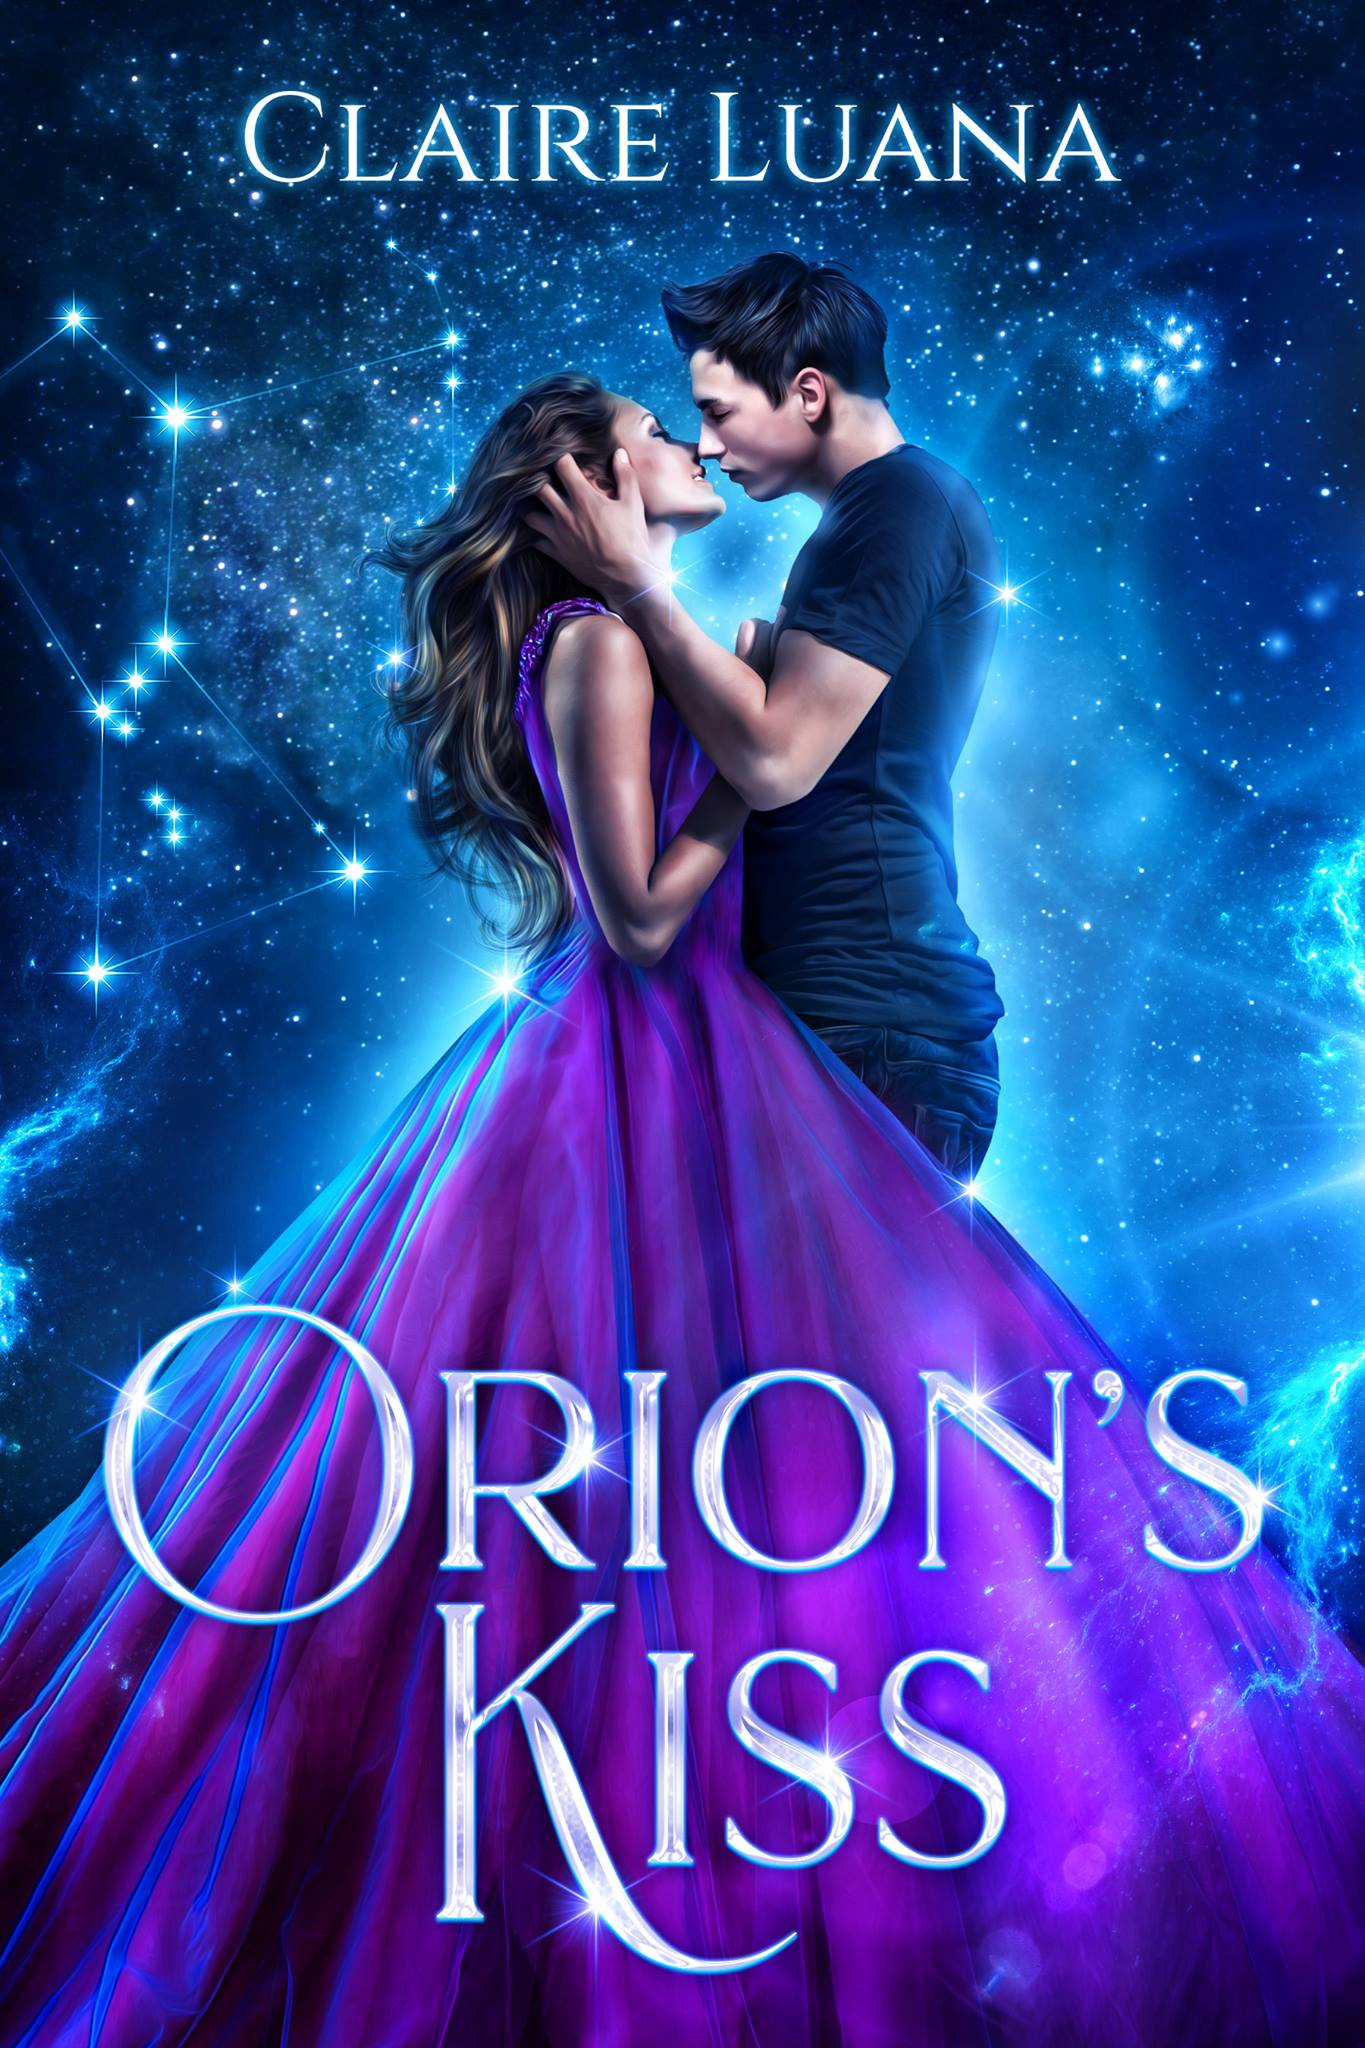 ORION'S KISS   Claire Luana    Meriah will do whatever it takes to save her sisters from a deadly ancient curse. Even if it means killing the cutest guy she's met all year.  Unless she can find another way...